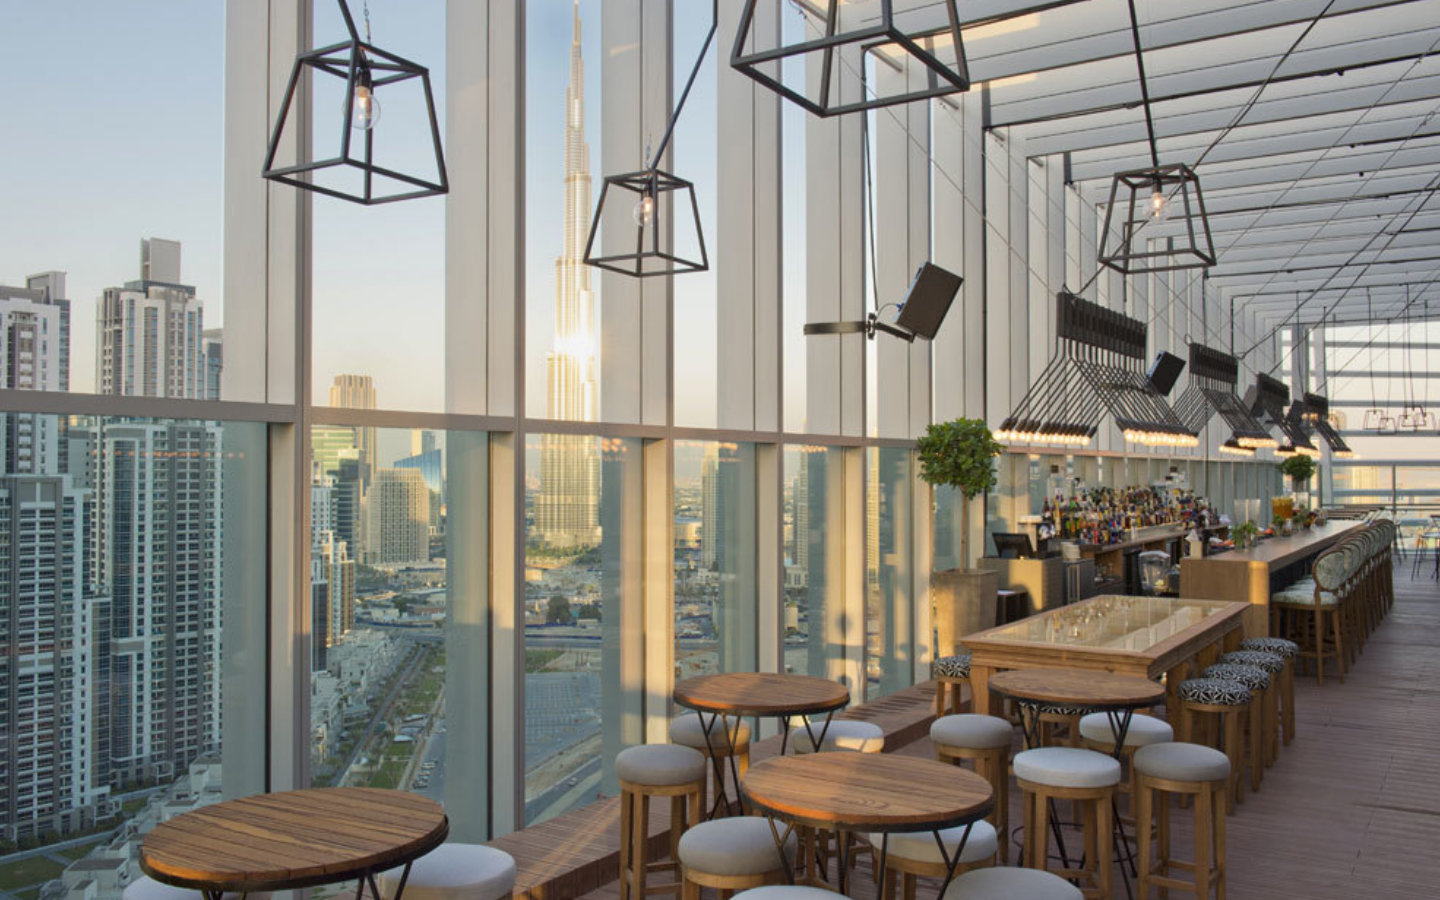 Rooftop Restaurant in Dubai With View of Burj Khalifa